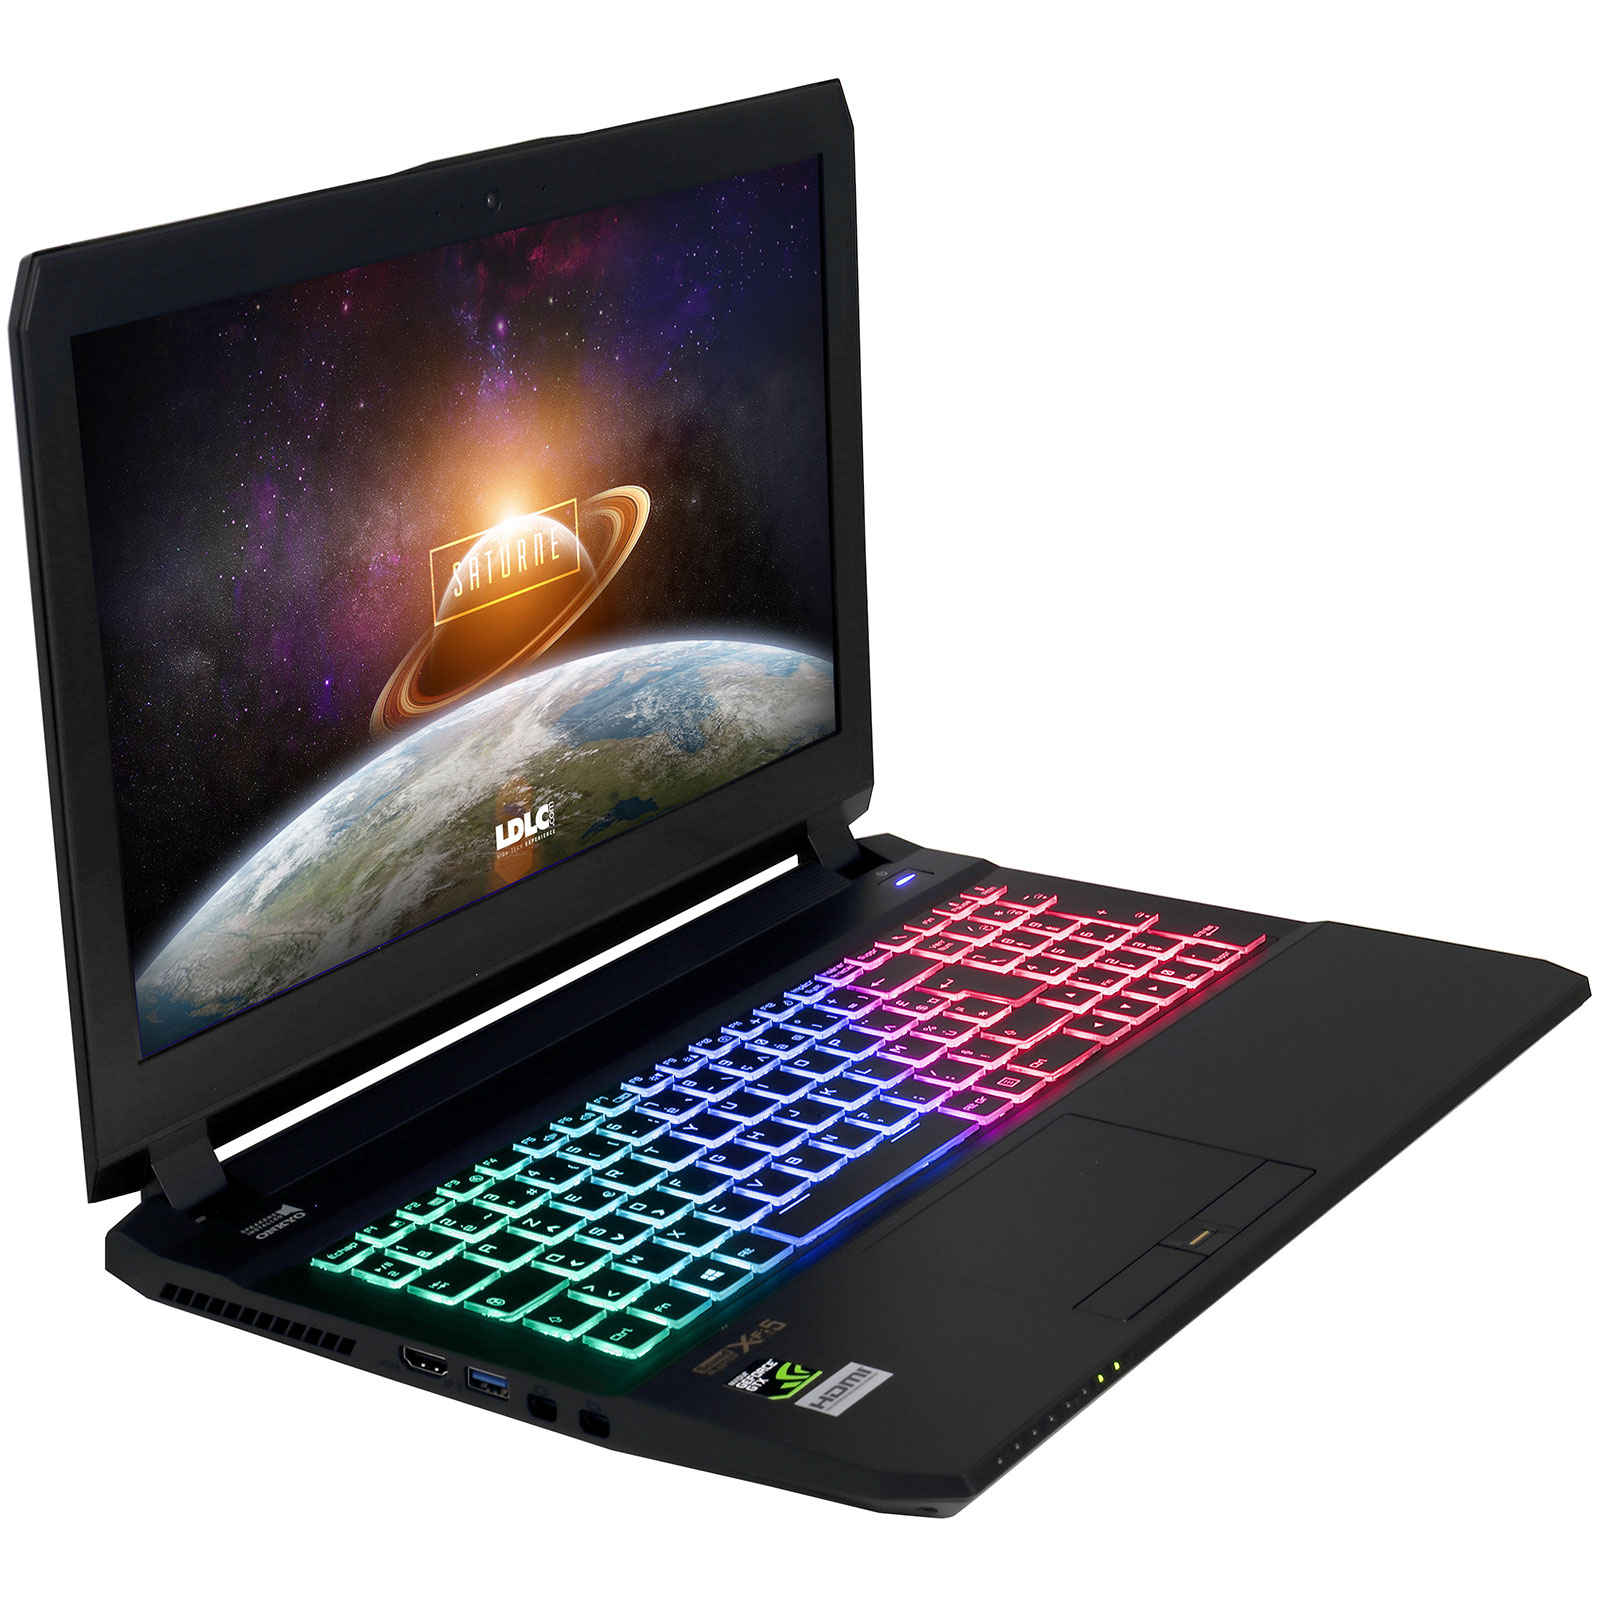 "PC portable LDLC Saturne TK71A-I7-32-H20S10-P10 Intel Core i7-7700HQ 32 Go SSD 1 To + HDD 2 To 15.6"" LED Full HD NVIDIA GeForce GTX 1070 8 Go Wi-Fi AC/Bluetooth Webcam Windows 10 Professionnel 64 bits"